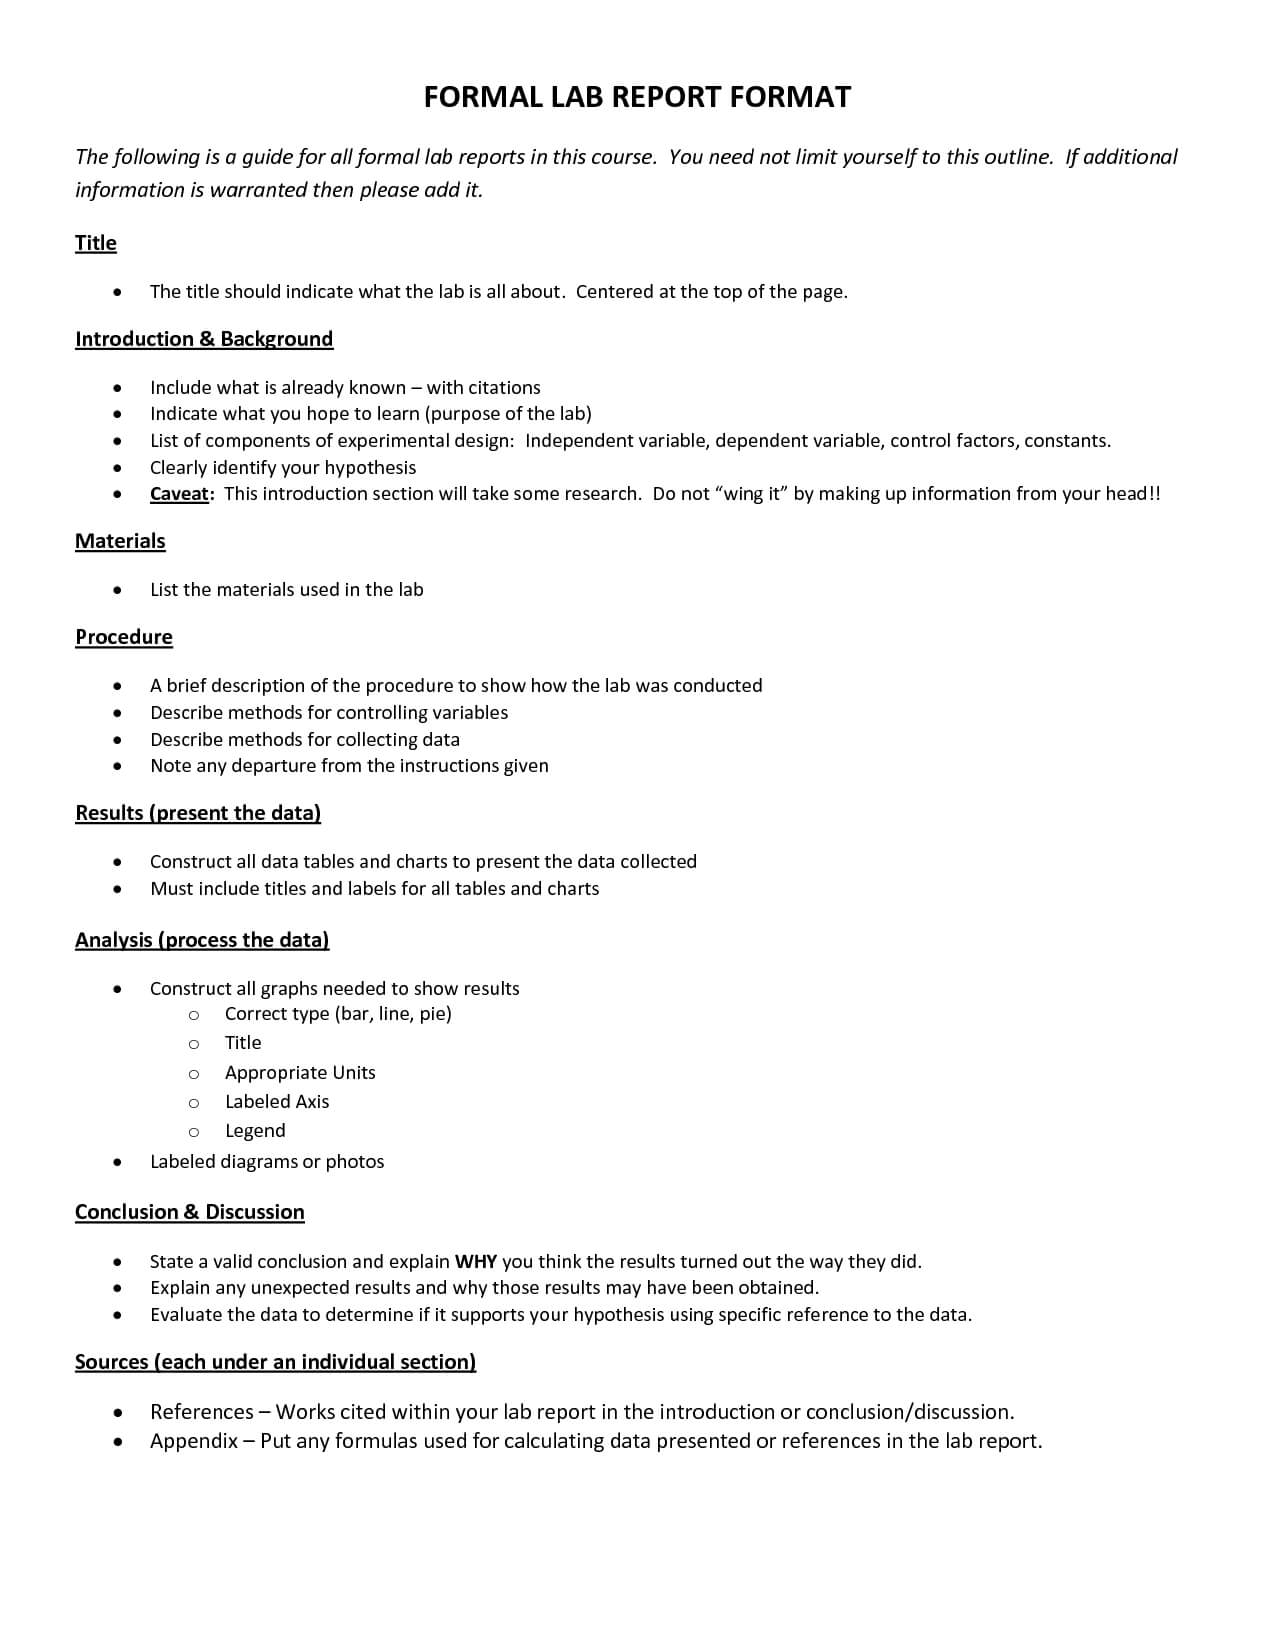 Formal Lab Report Format : Biological Science Picture In Formal Lab Report Template